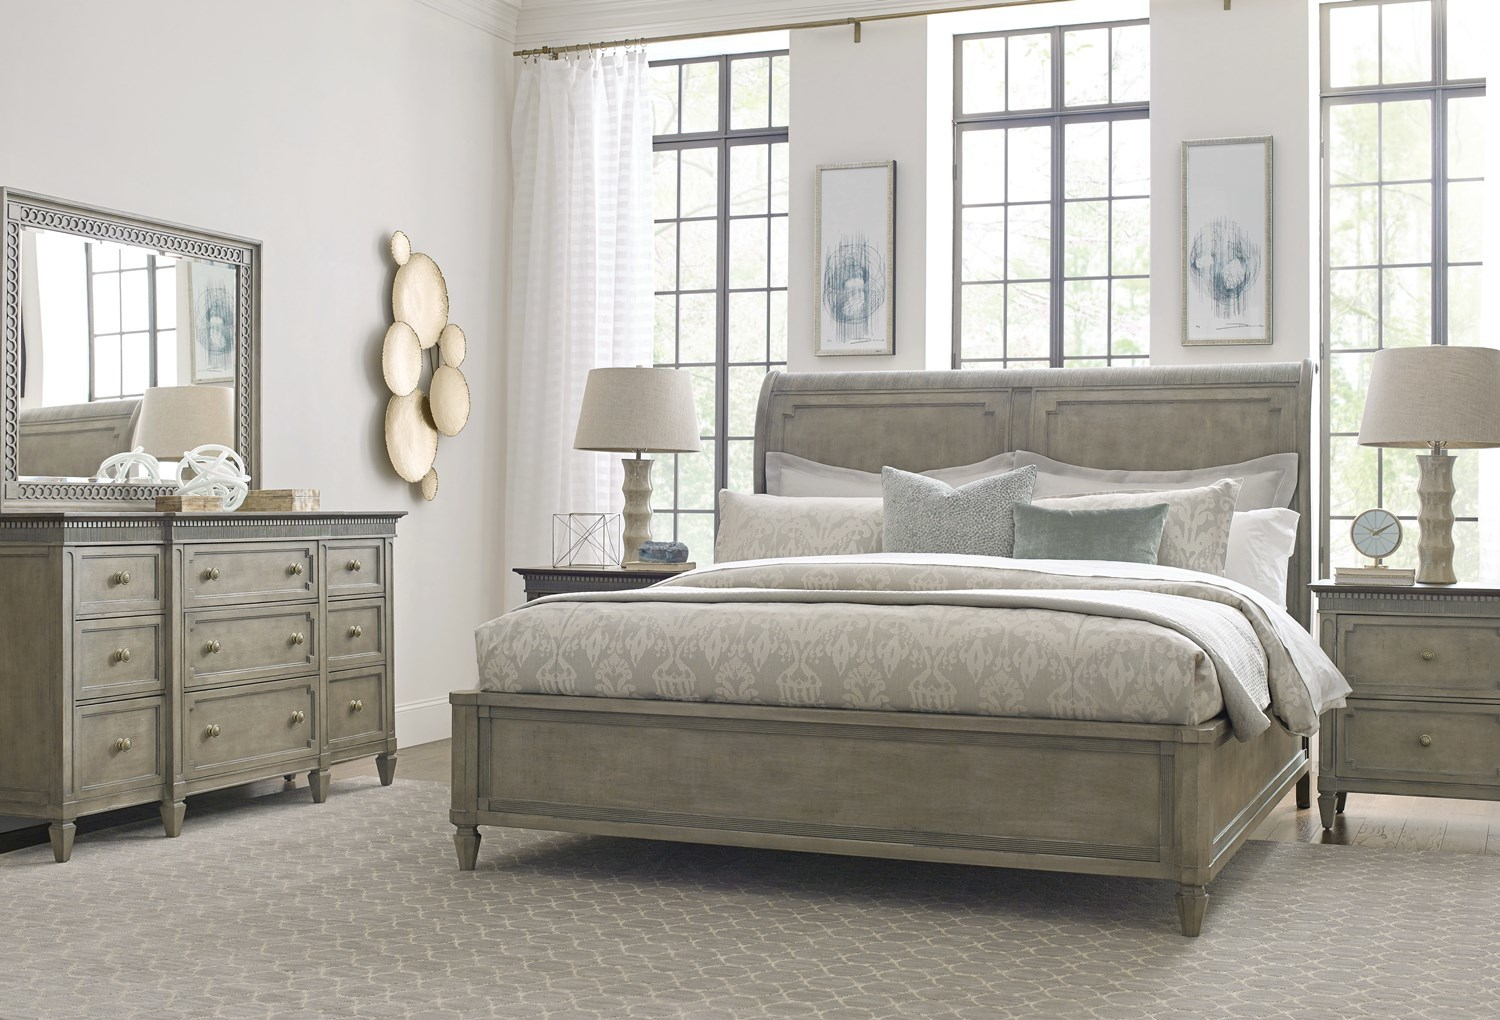 Introducing Savona - a French gray bedroom and dining room furniture collection from American Drew